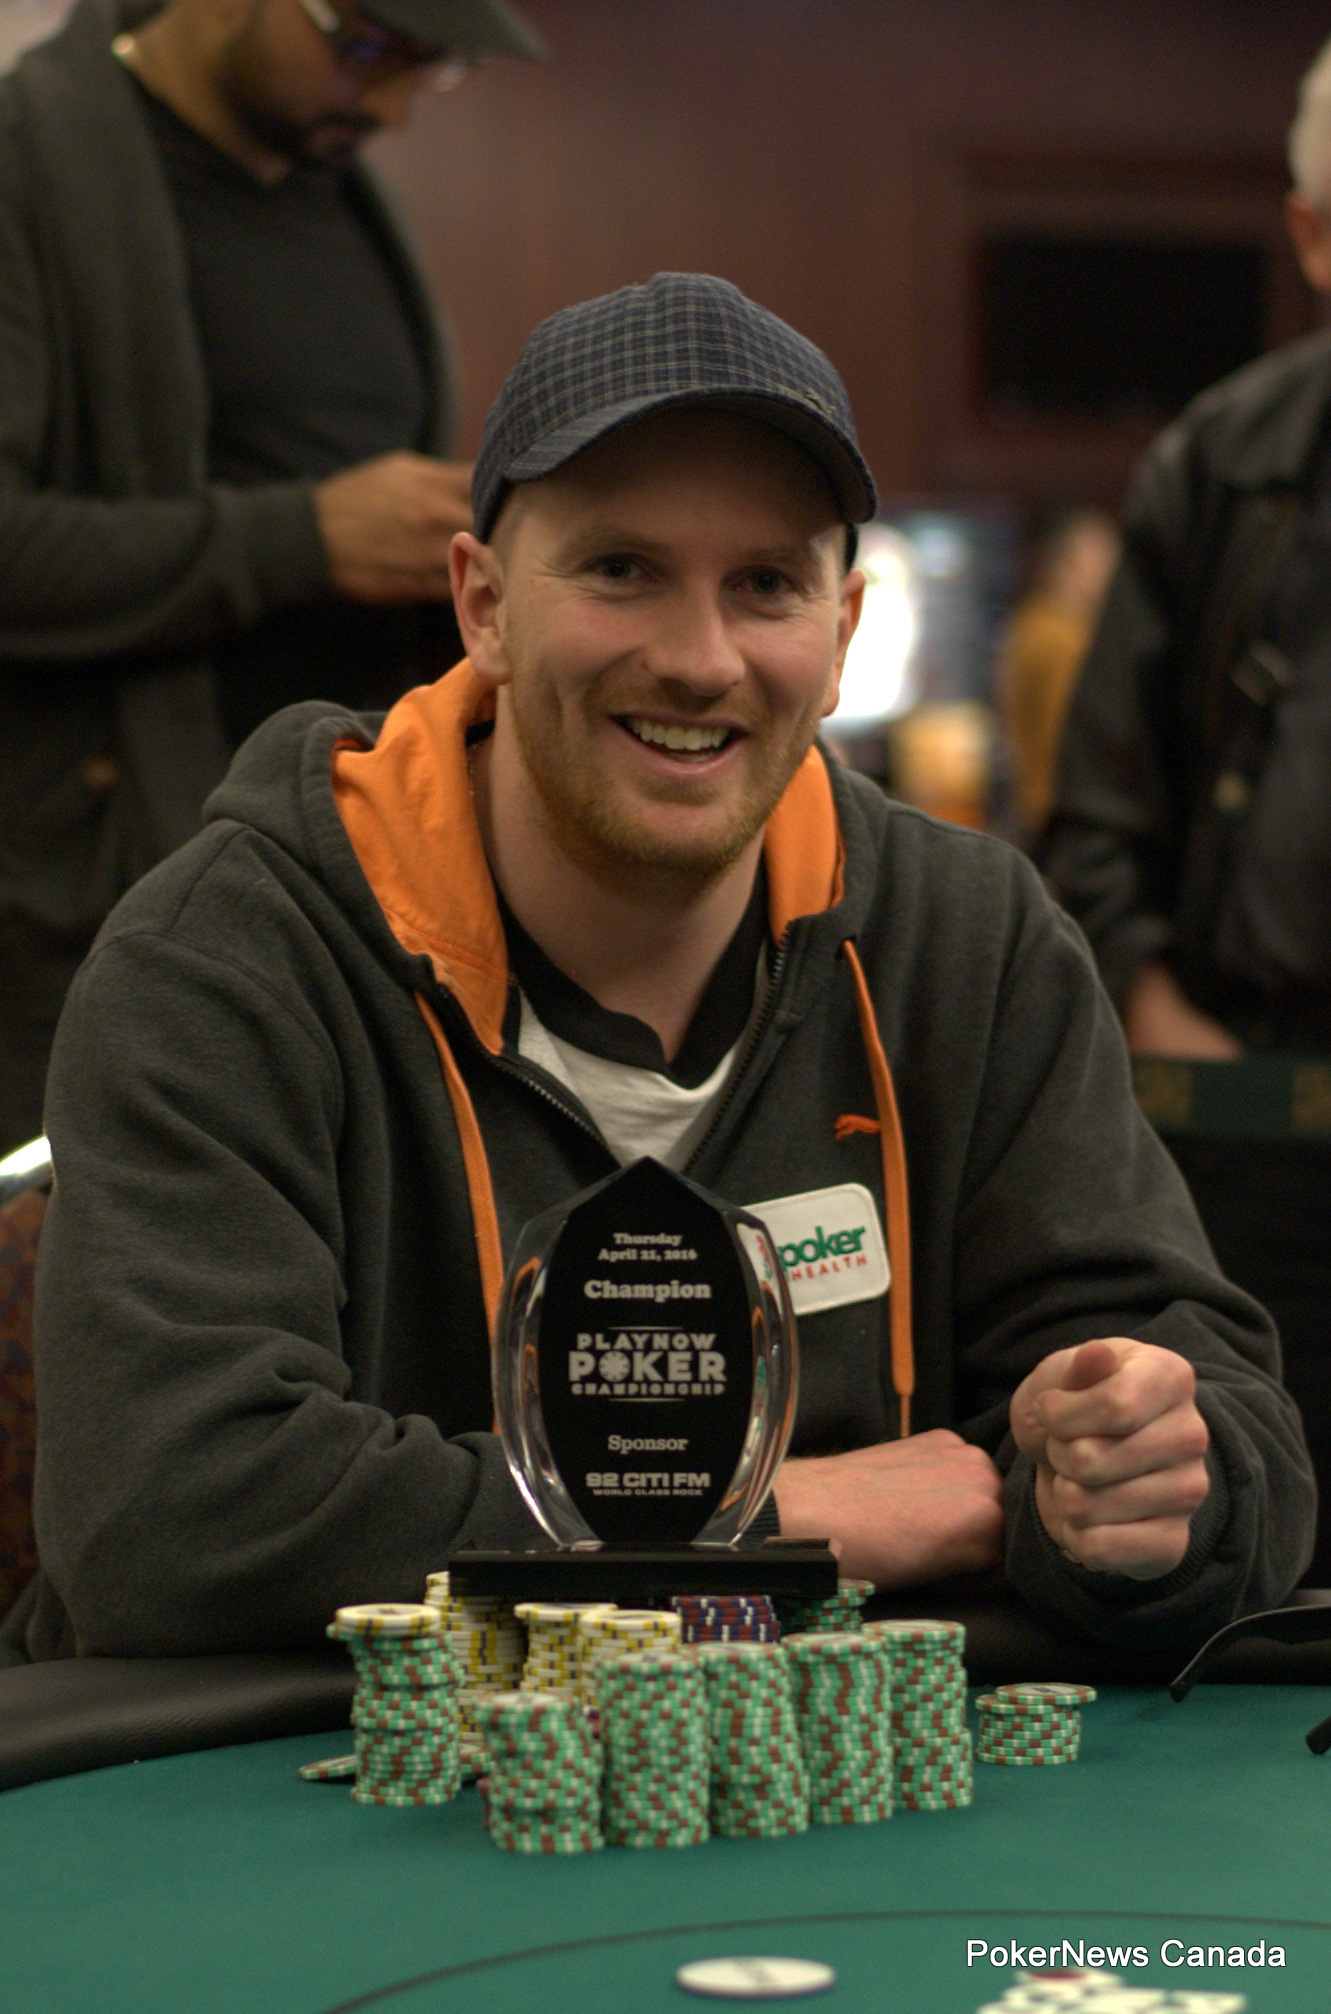 Eric Johnson won the second event of the PlayNow Poker Championship